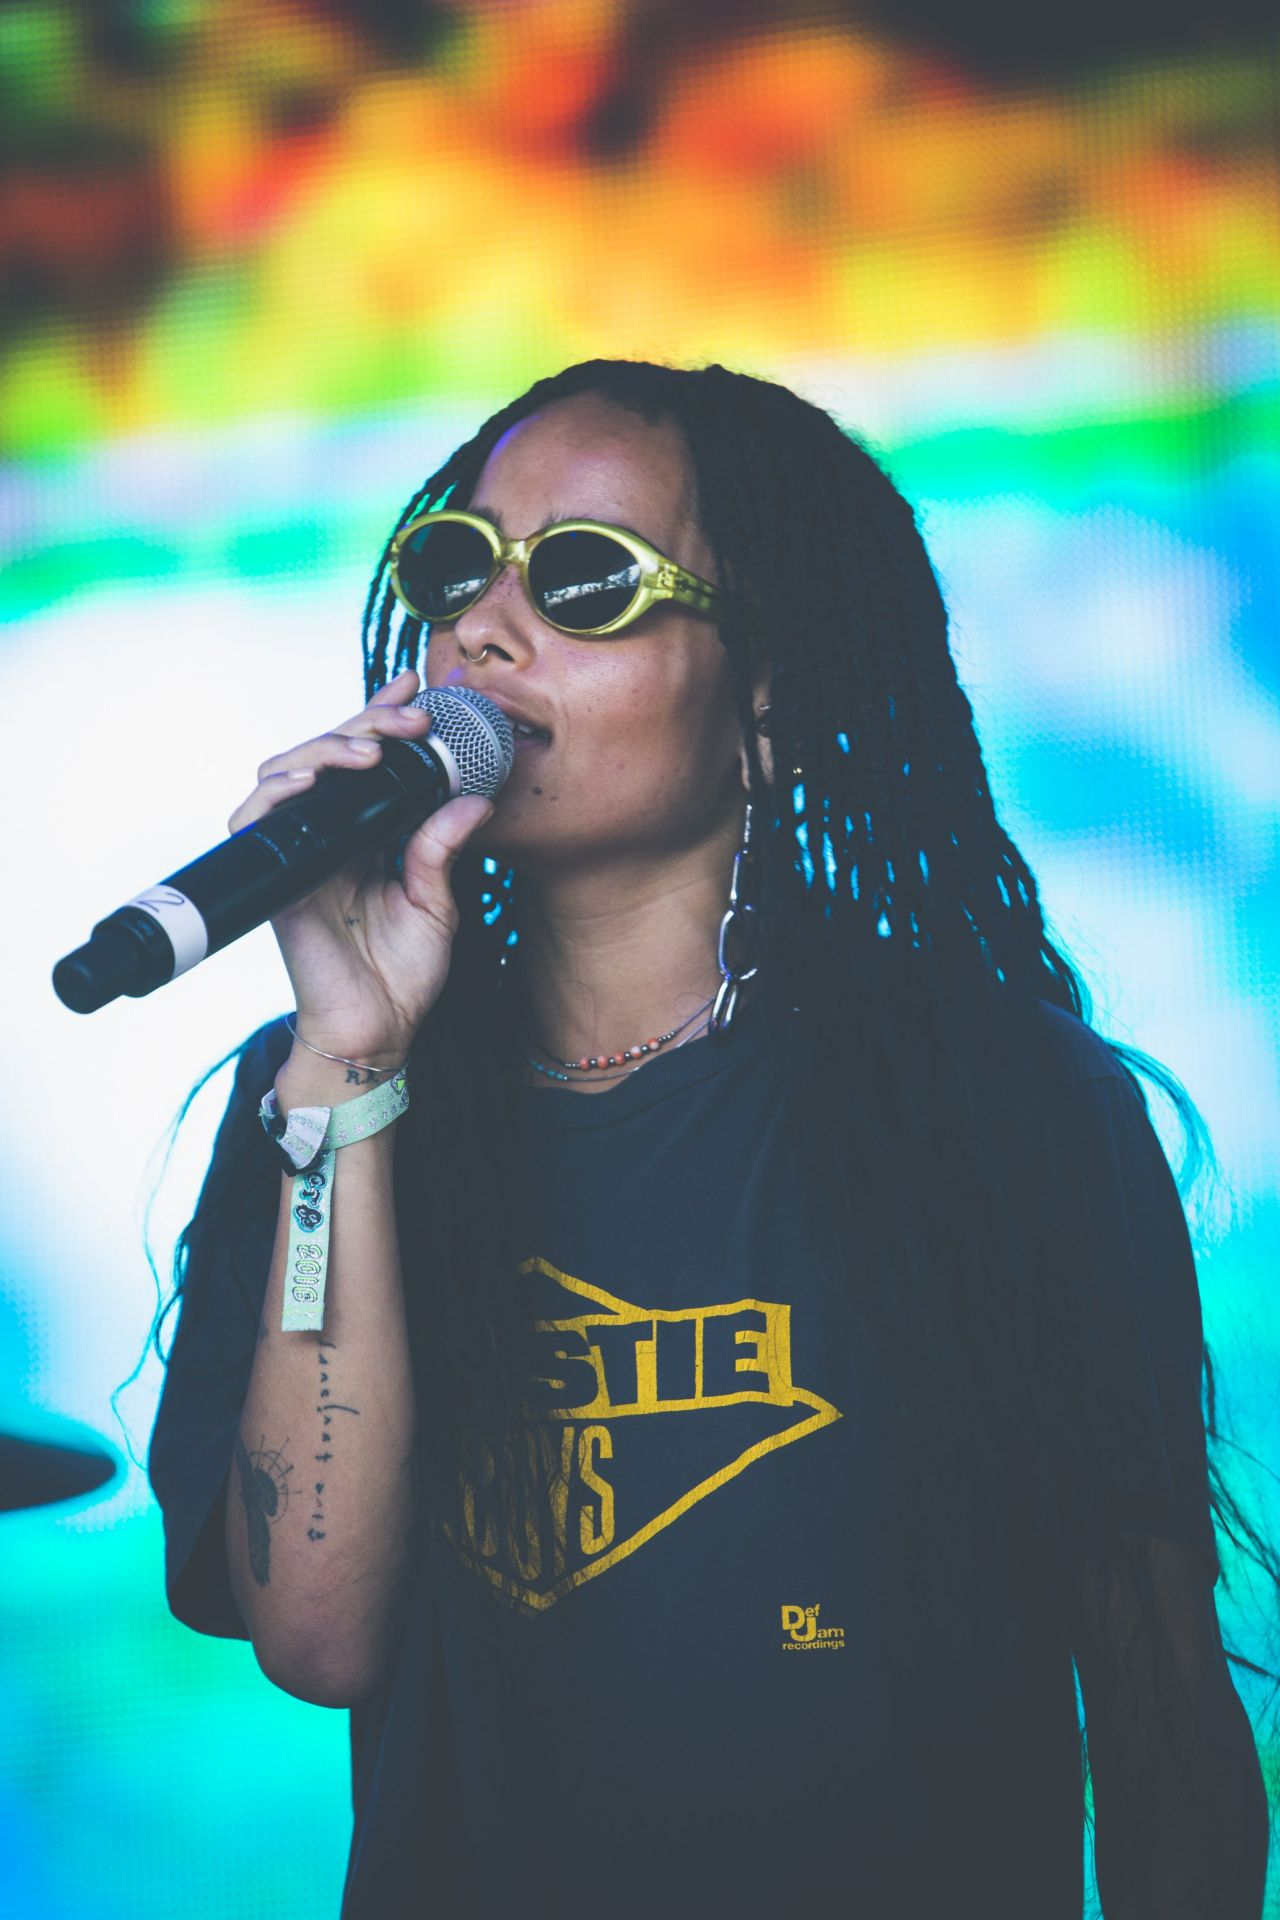 Zoe Kravitz Performs With Lolawolf At The Bonnaroo Music